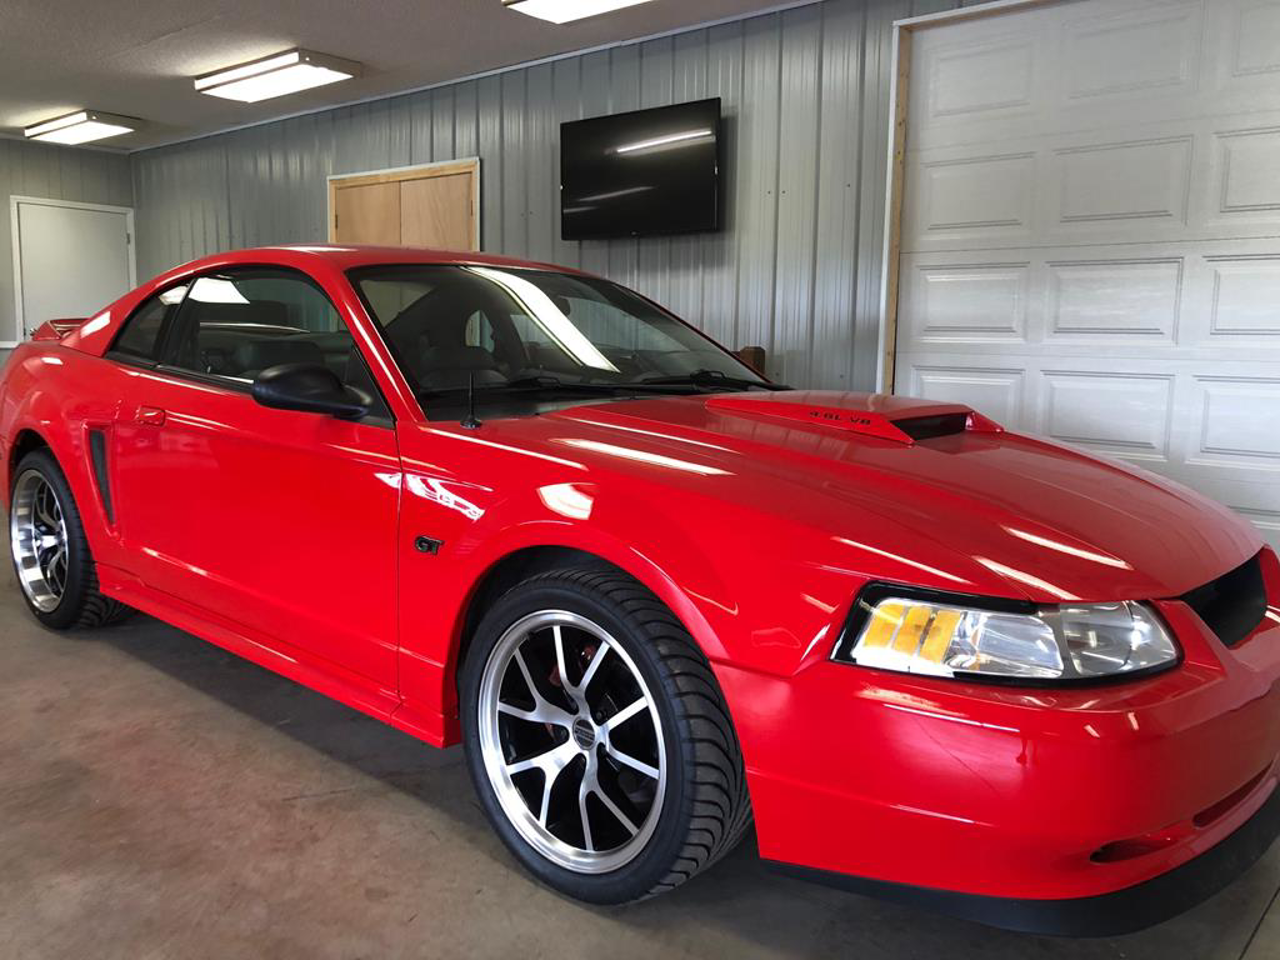 2000 ford mustang gt for sale classiccars com cc 1133617